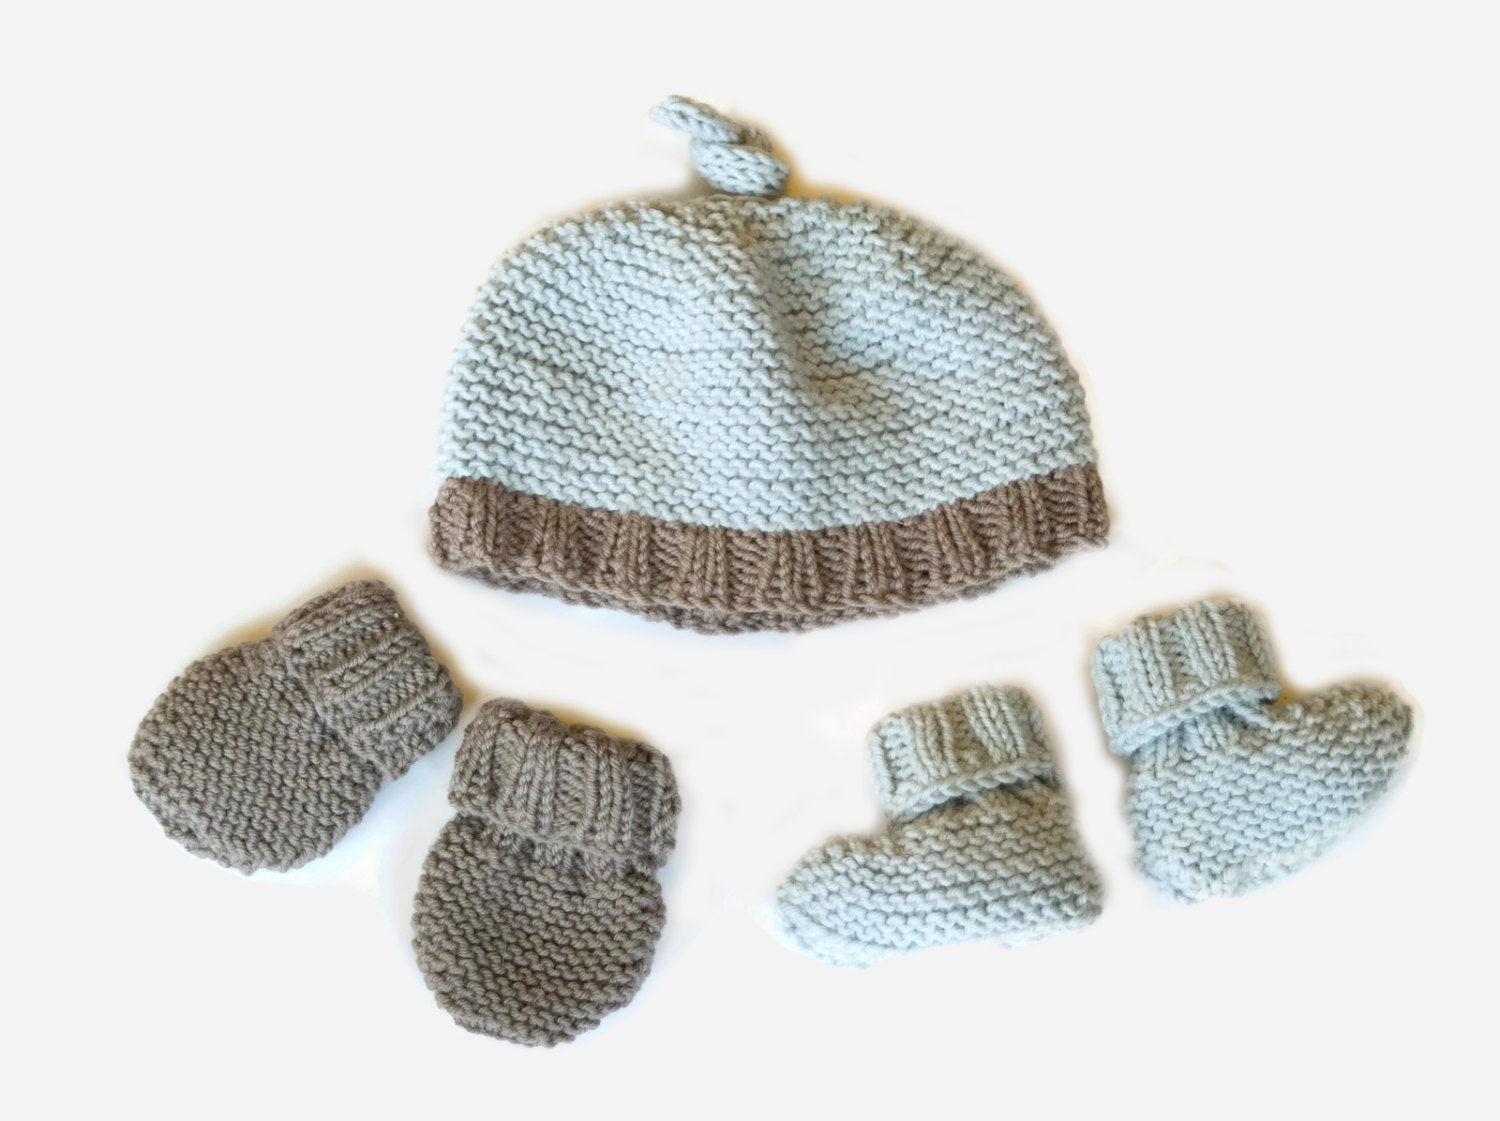 Knitting Patterns For Baby Mittens And Booties : Easy Knitting Pattern: baby hat booties & mittens by SprogletsKits